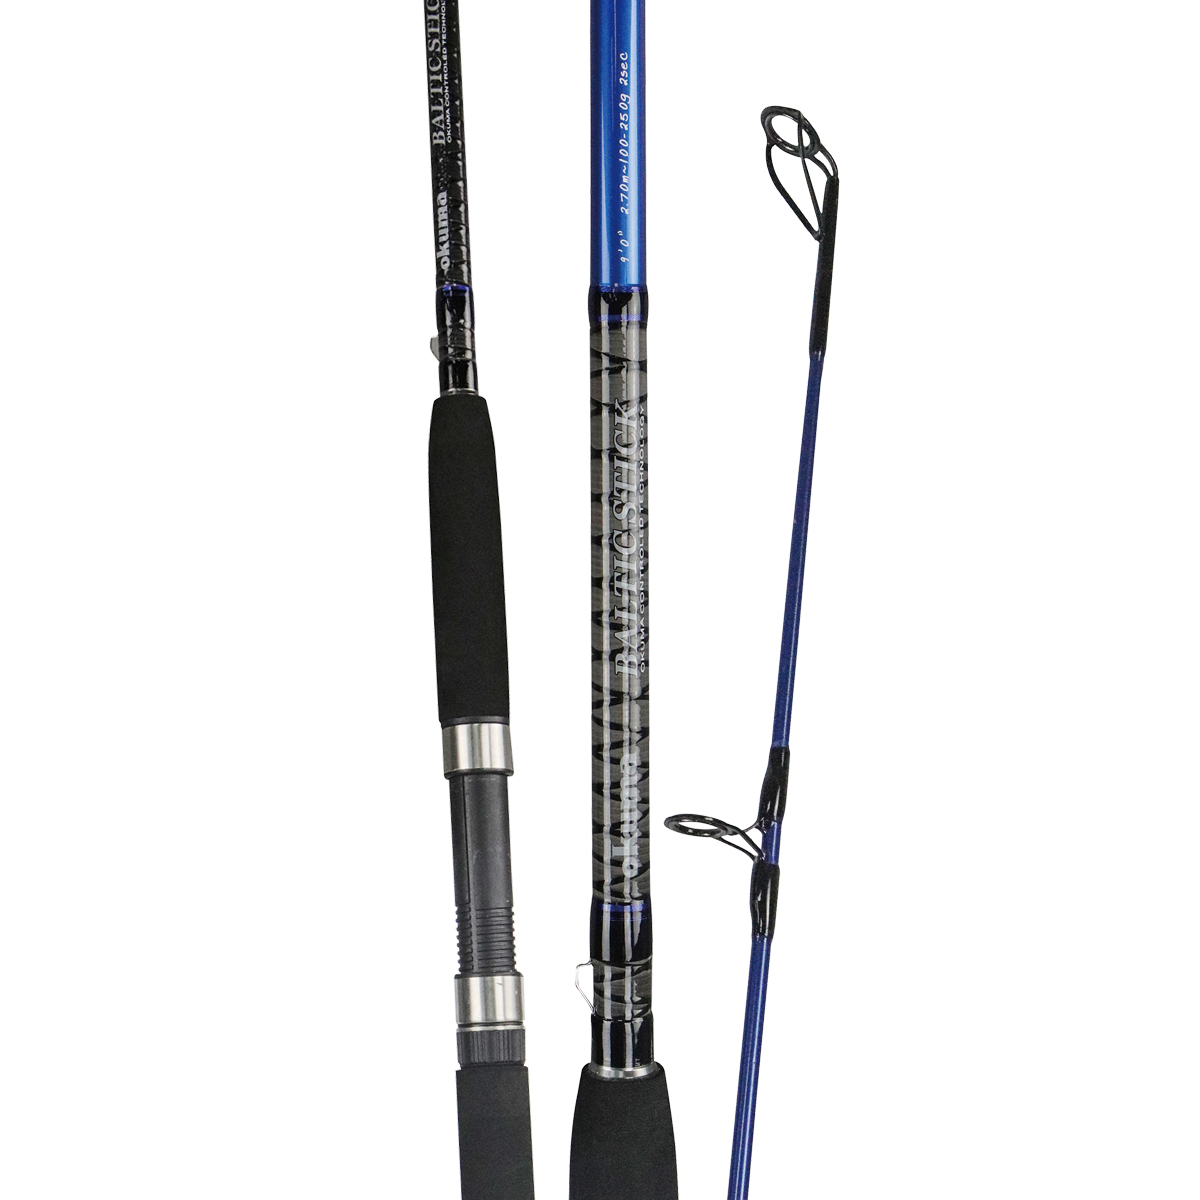 Baltic Stick Rod - Okuma Baltic Stick Rod-For freshwater fishing- High modulus ultra-responsive carbon blank construction- Zirconium guides inserts reduce friction-Quality Okuma graphite reel seat